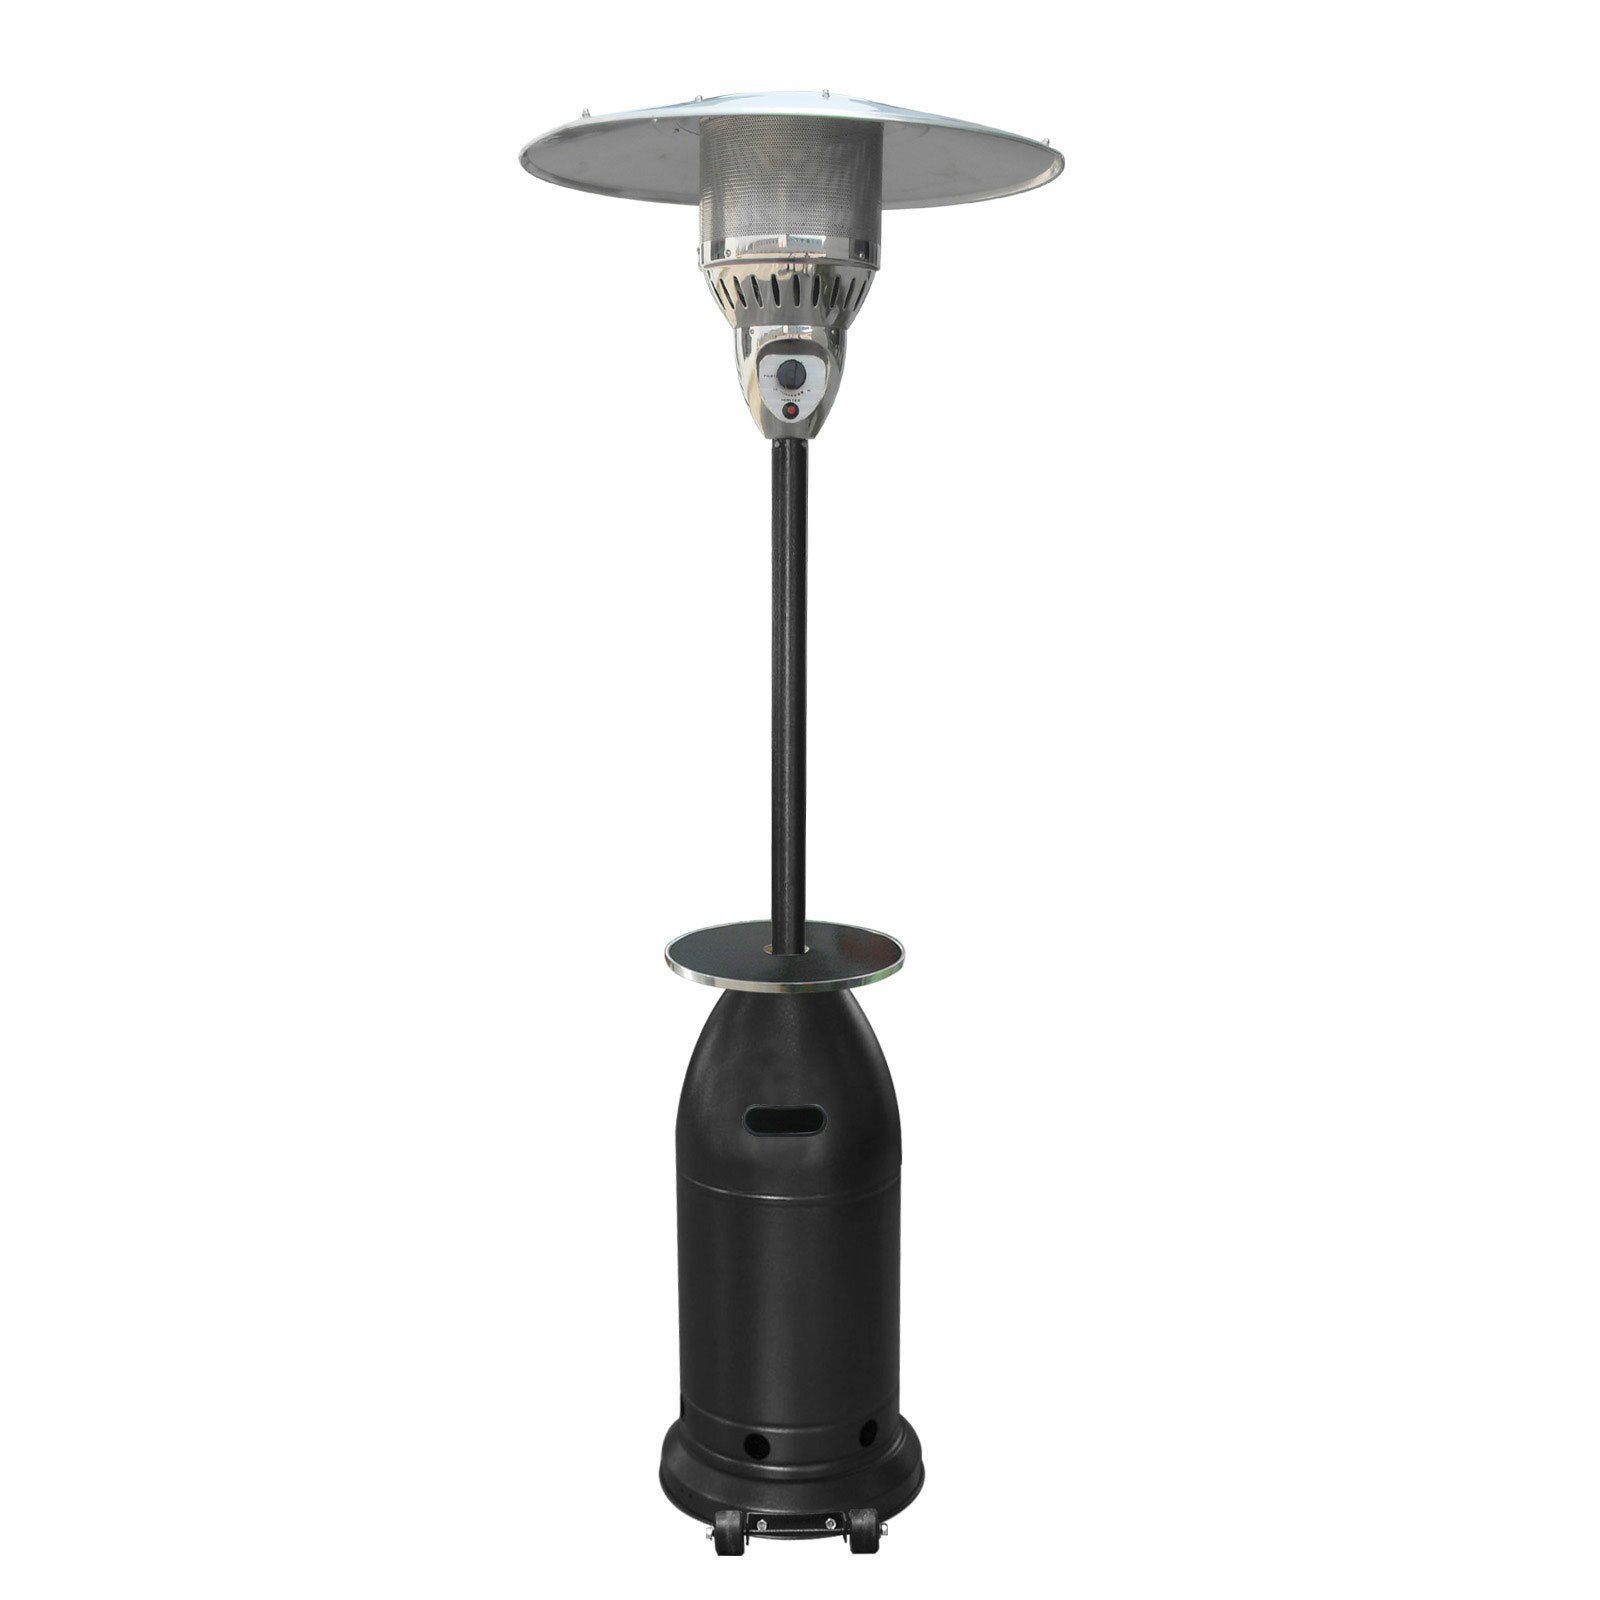 ... Propane Patio Heater Tabletop Decorating Tabletop Patio Heater